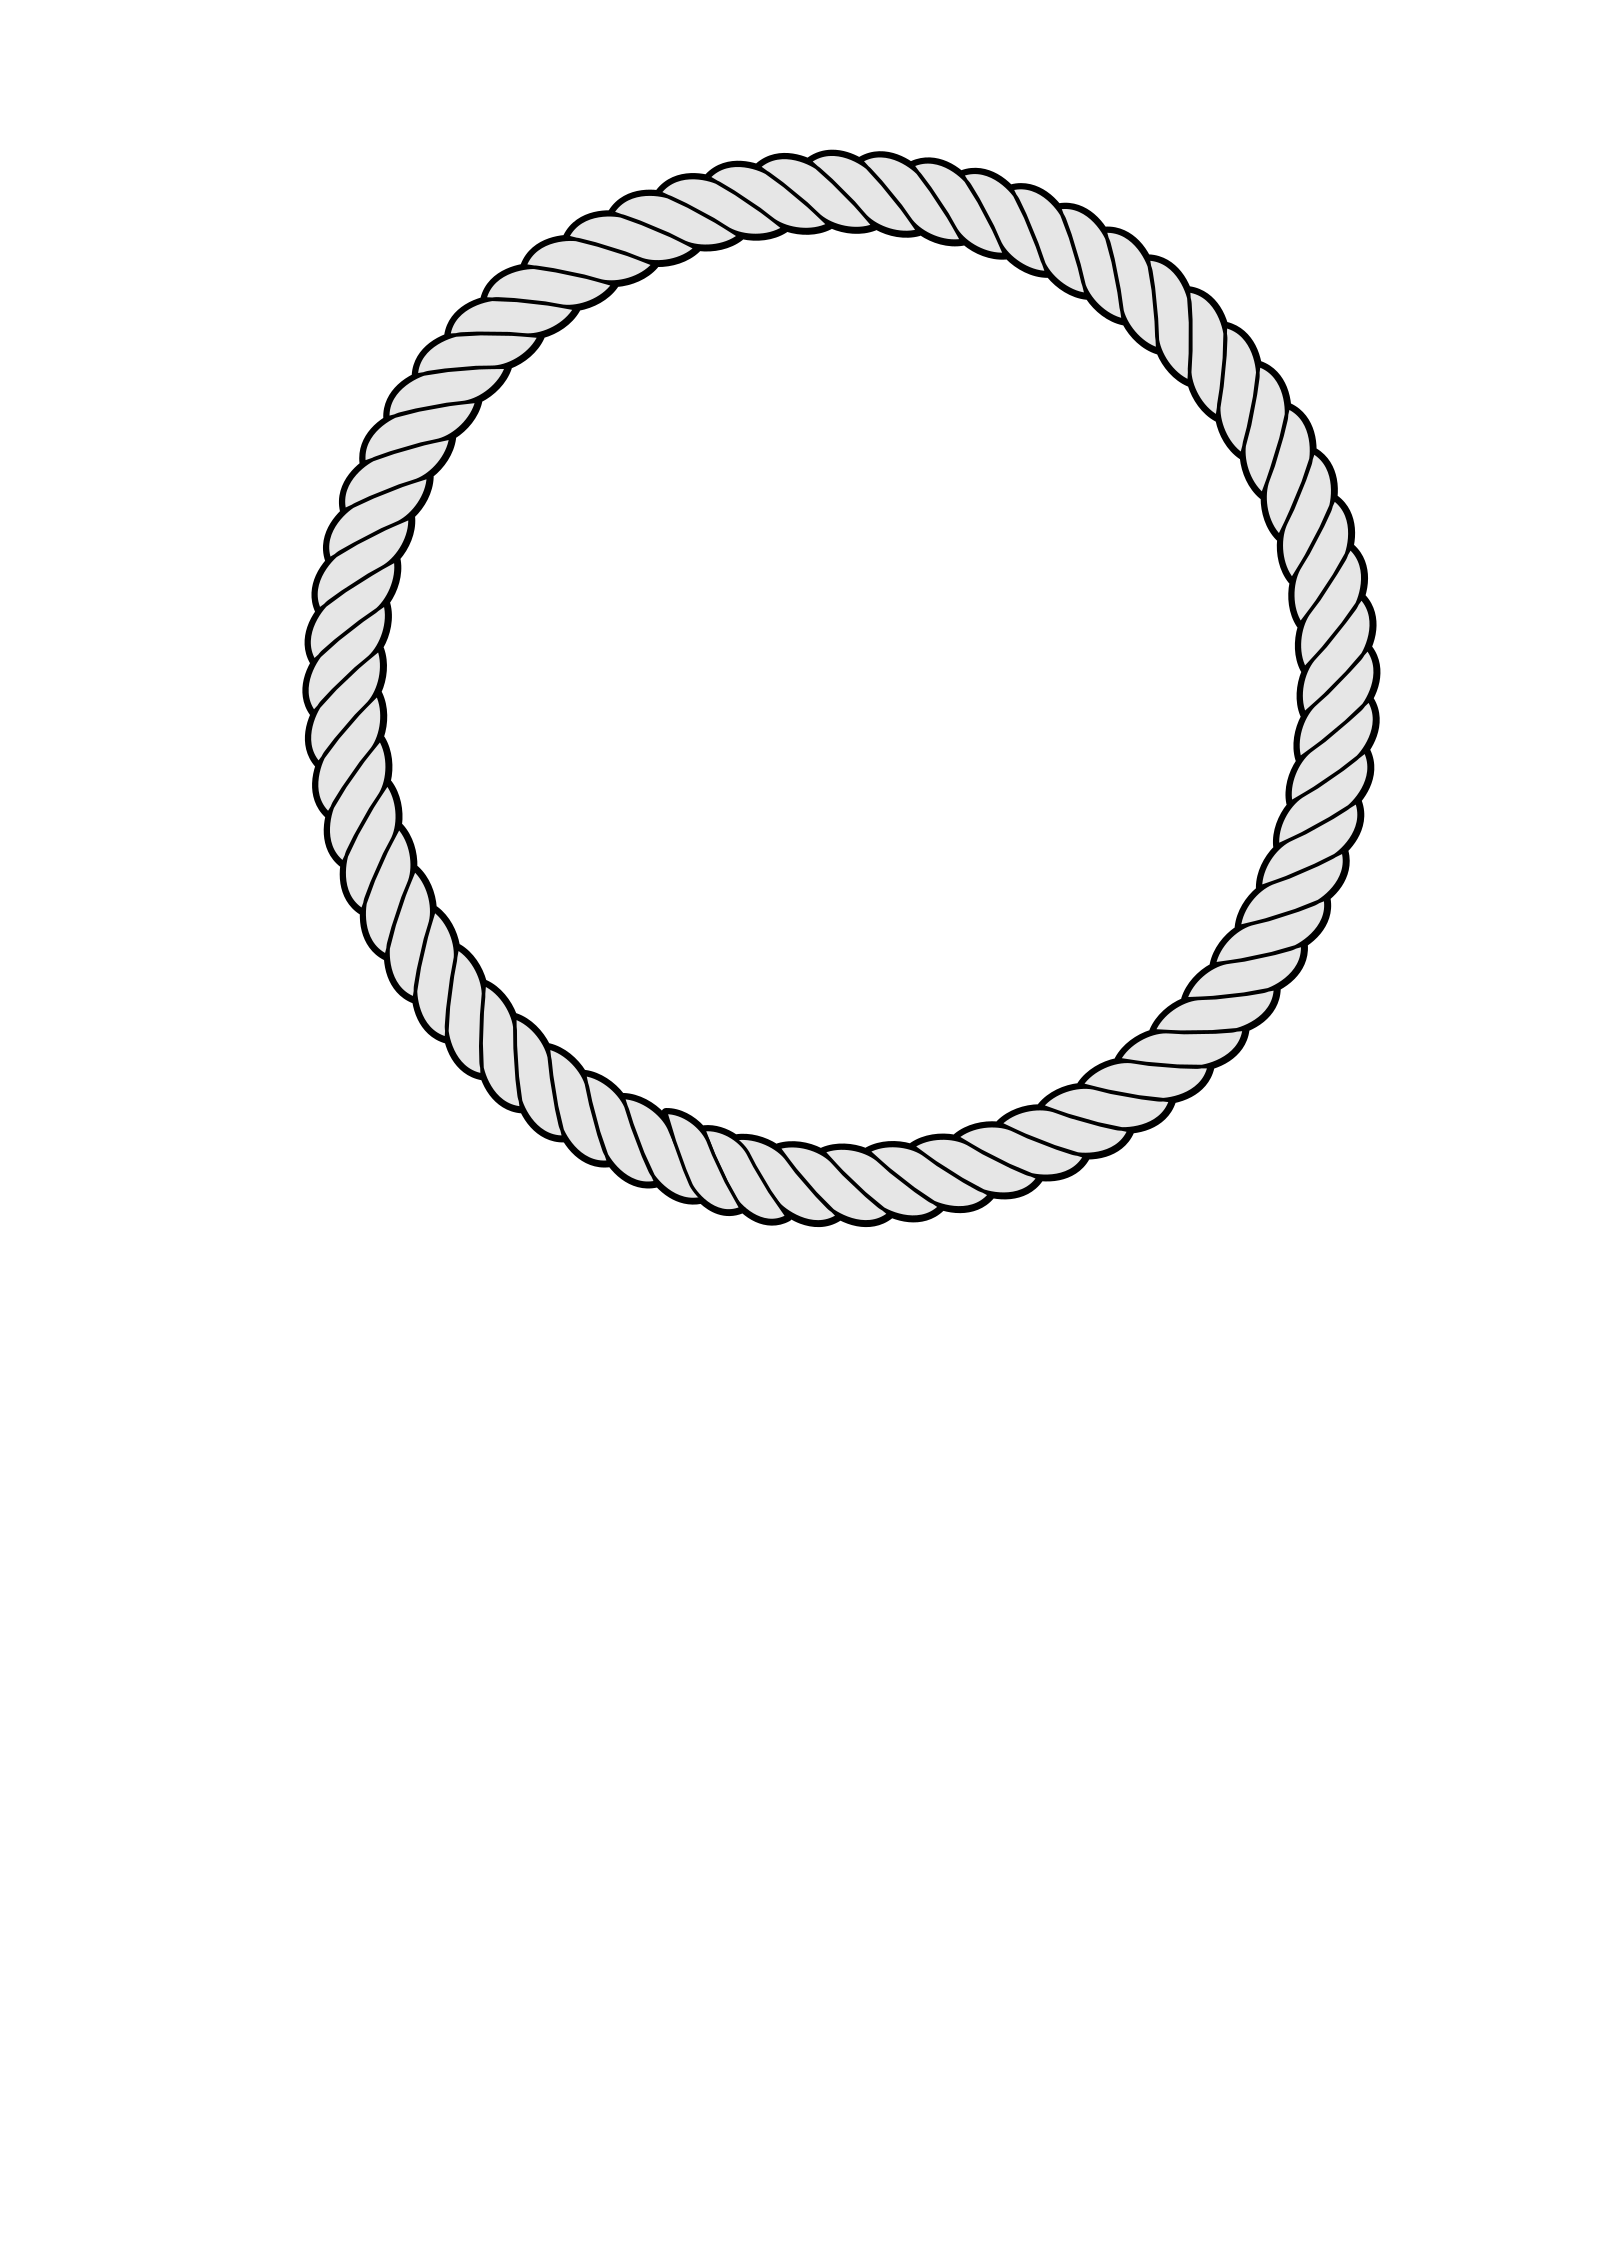 Rope Ring 2 SVG Clip arts